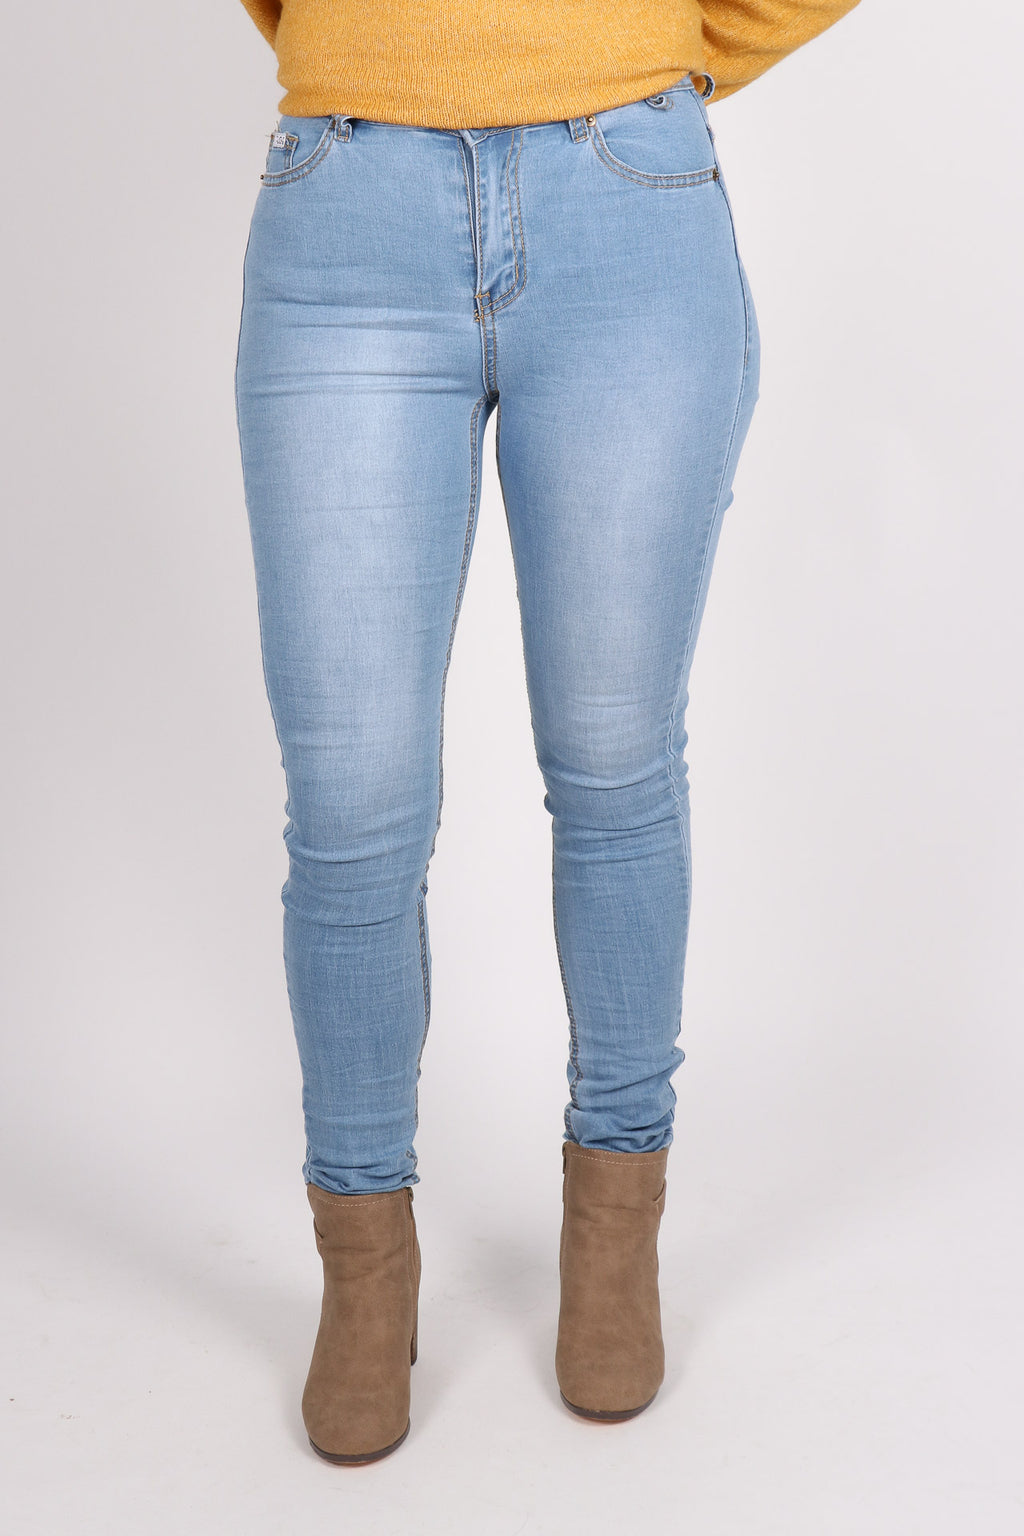 Maison Stretch Jeans in Light